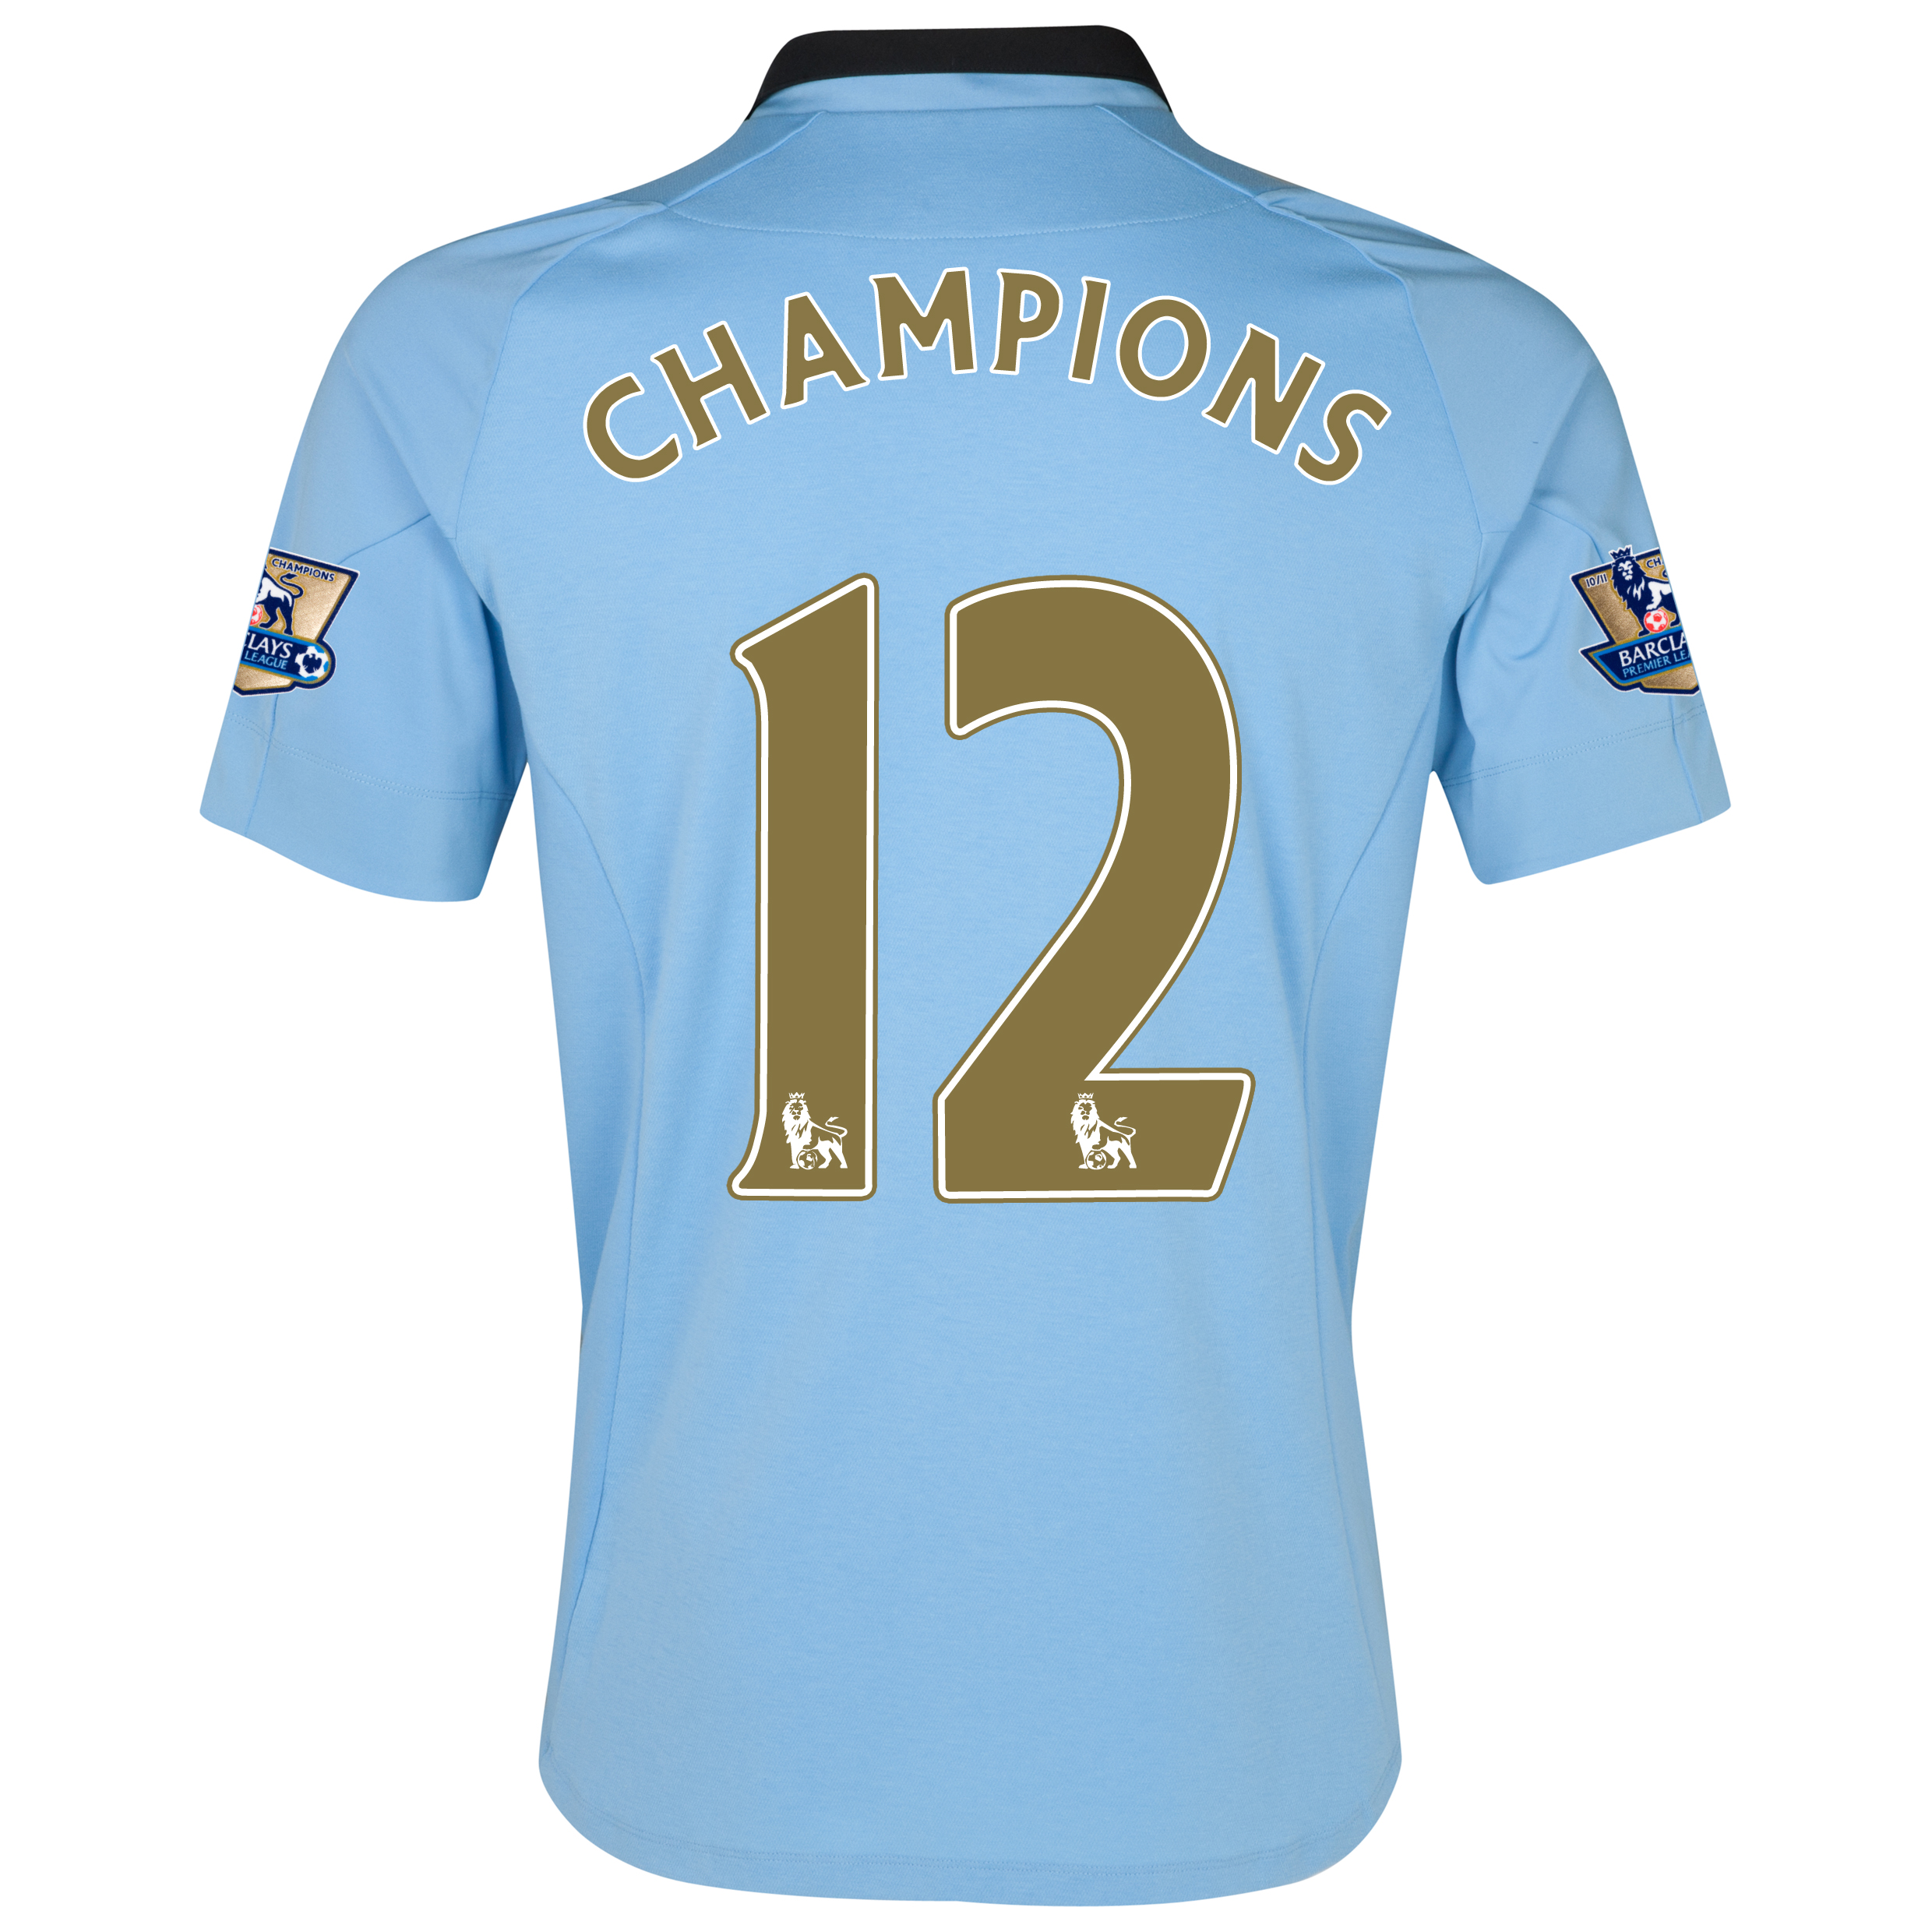 Manchester City Home Shirt 2012/13 with Champions 12 printing and Premier League Champions Badges